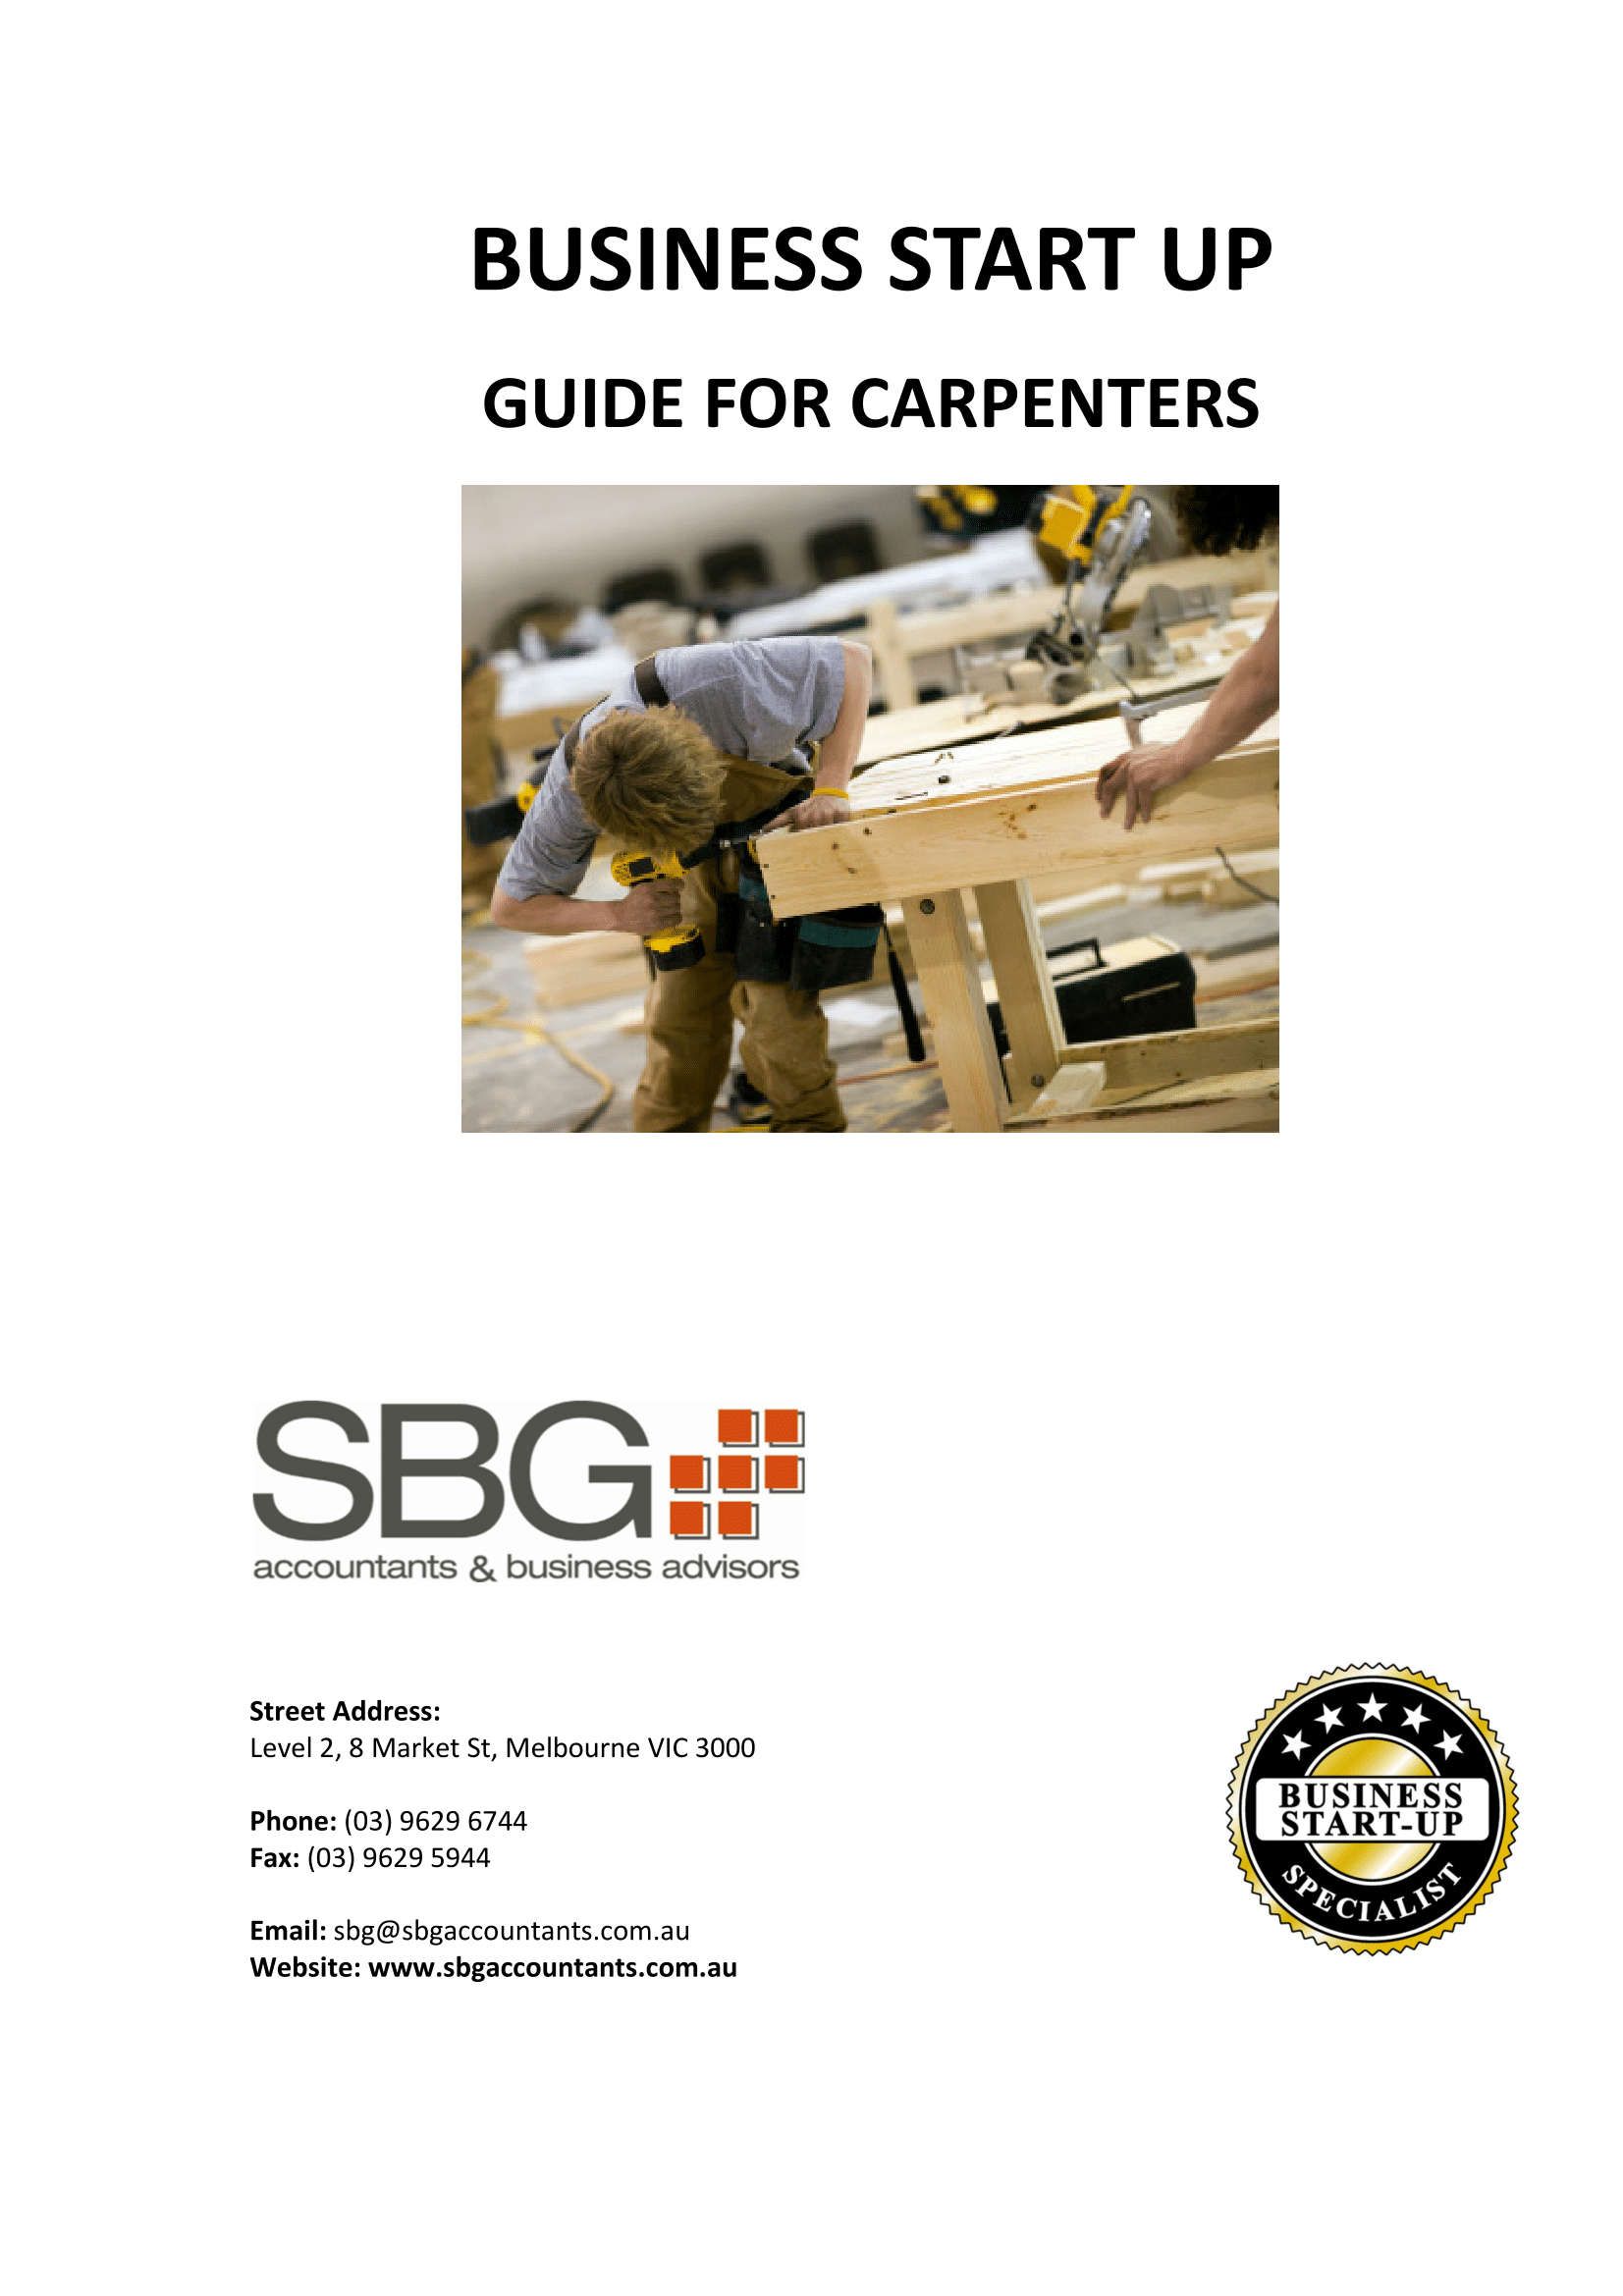 SBG Accountants - Carpenters